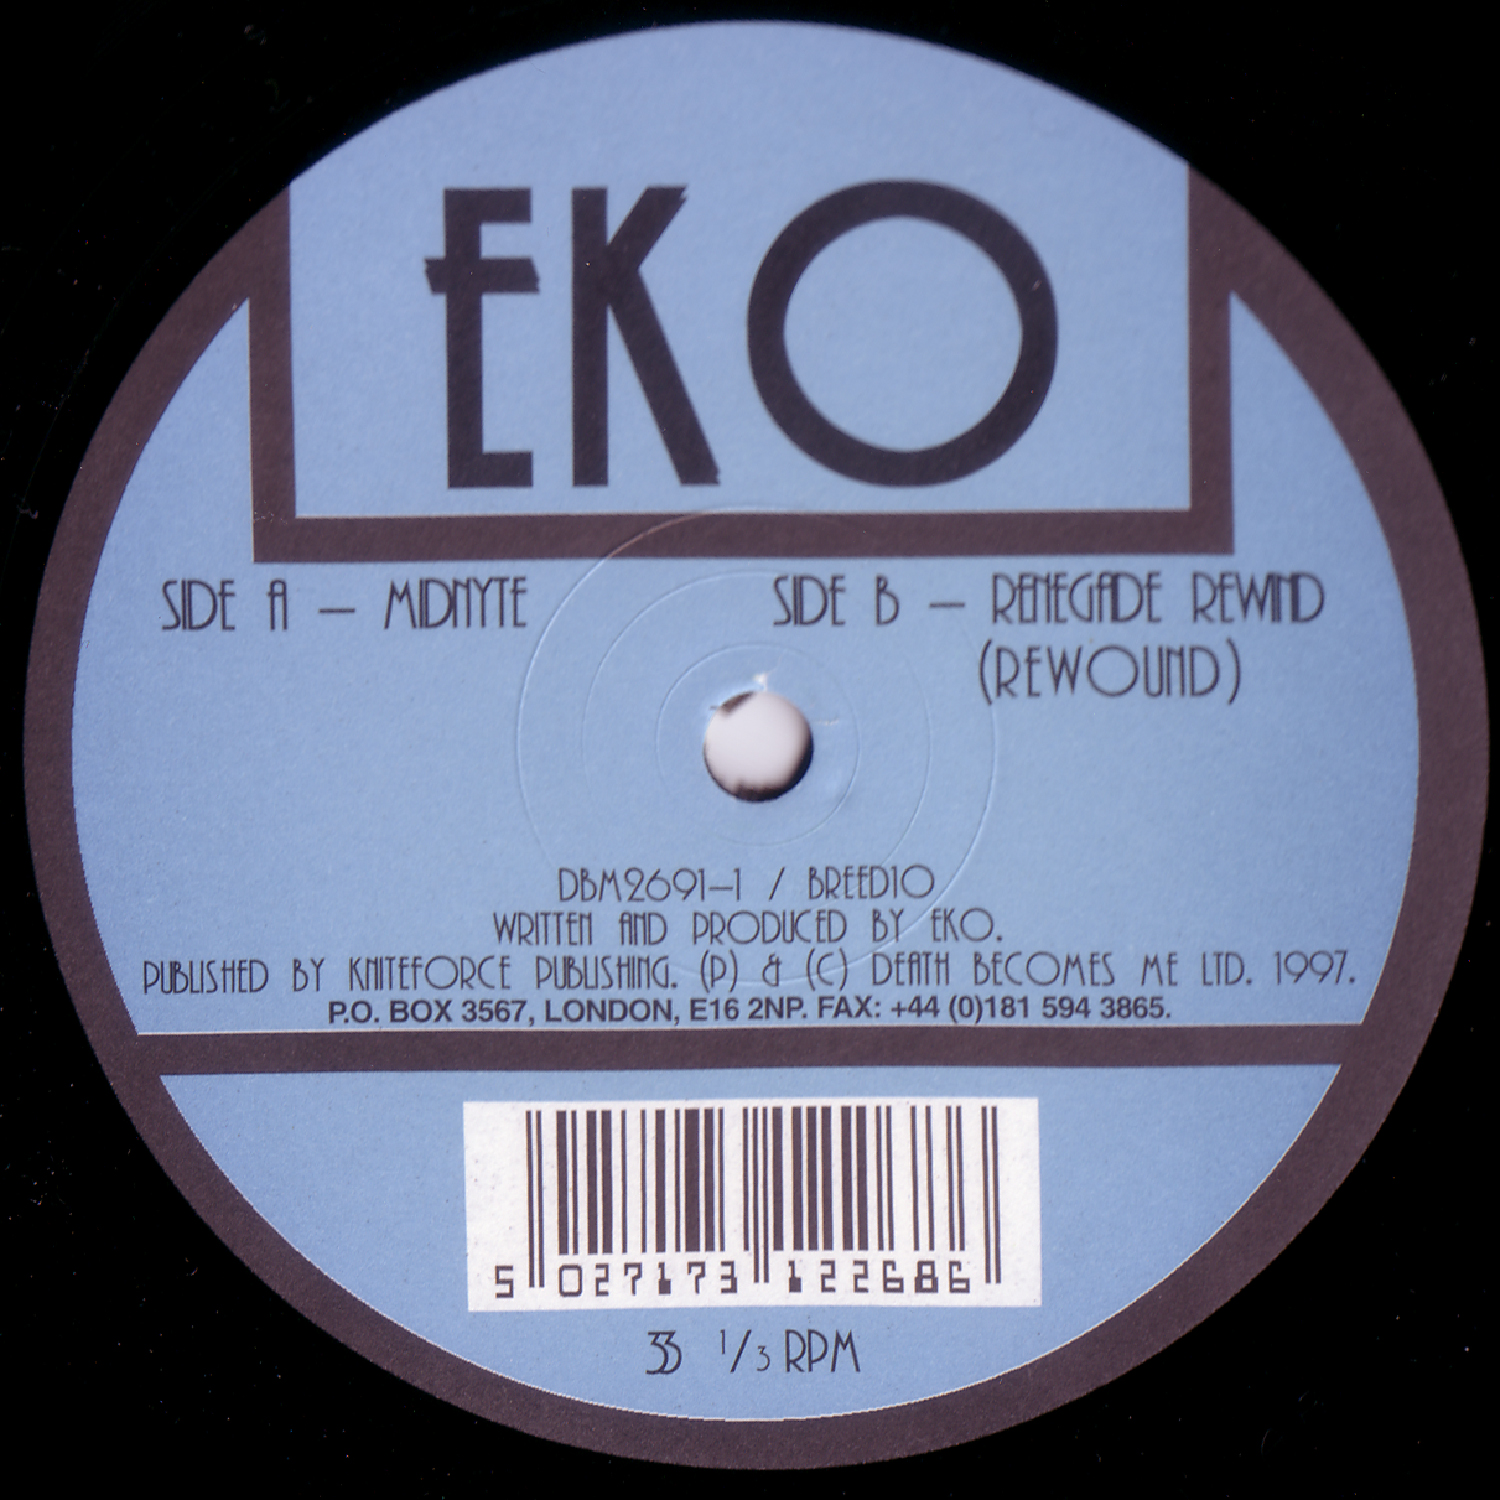 [BREED010] Eko - Midnyte EP (Digital Only)